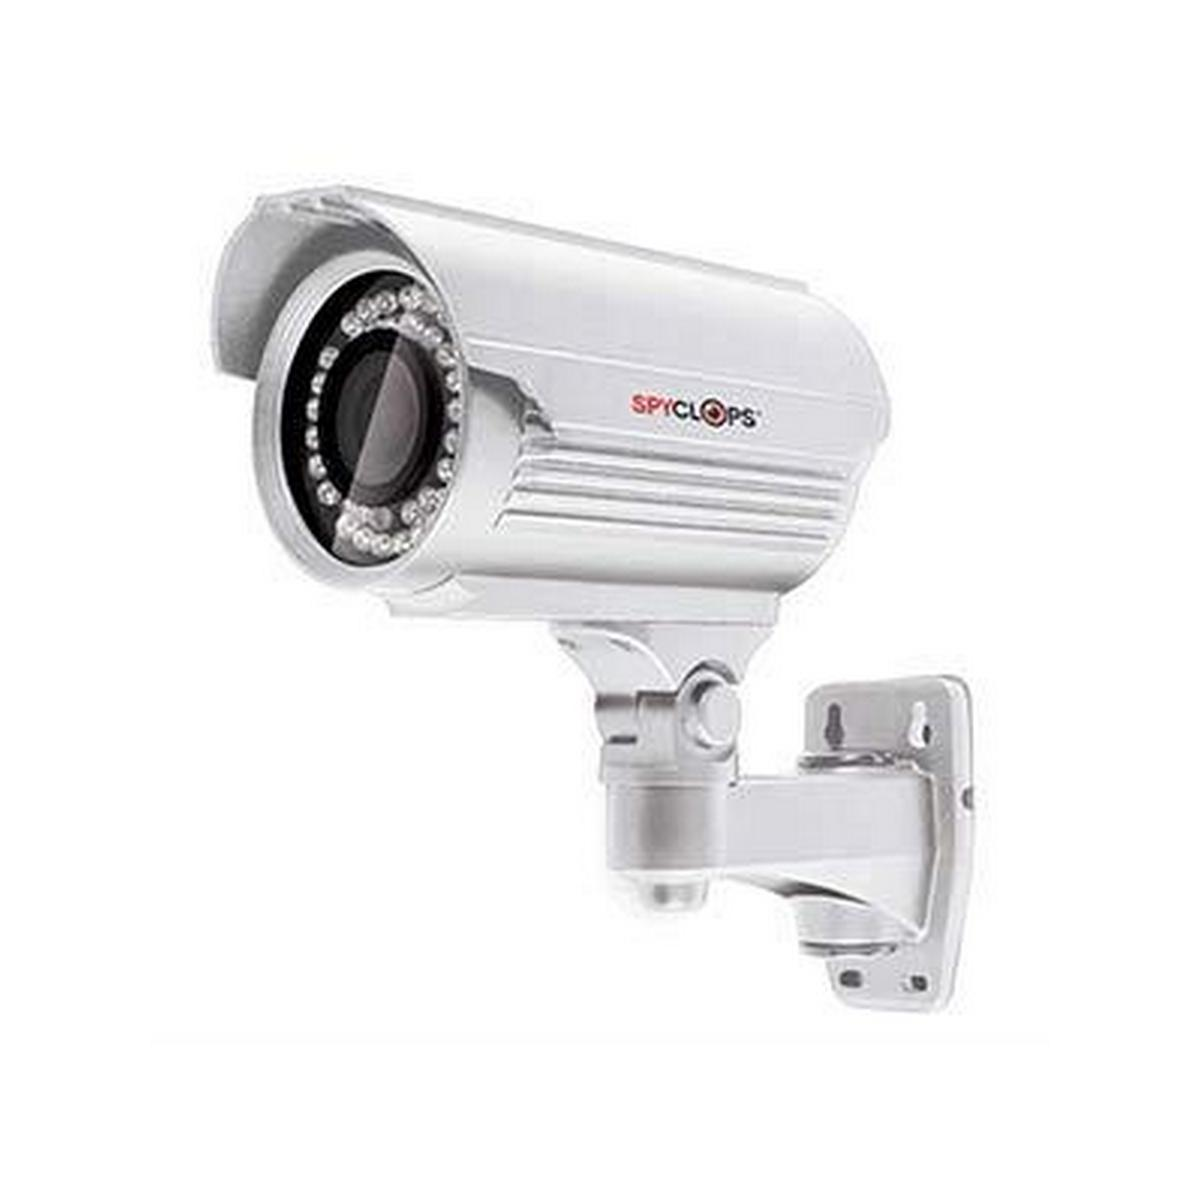 SPYCLOPS BULLET CAMERA WHITE 700 TVL IP66 .001 LUX 42 IRLED